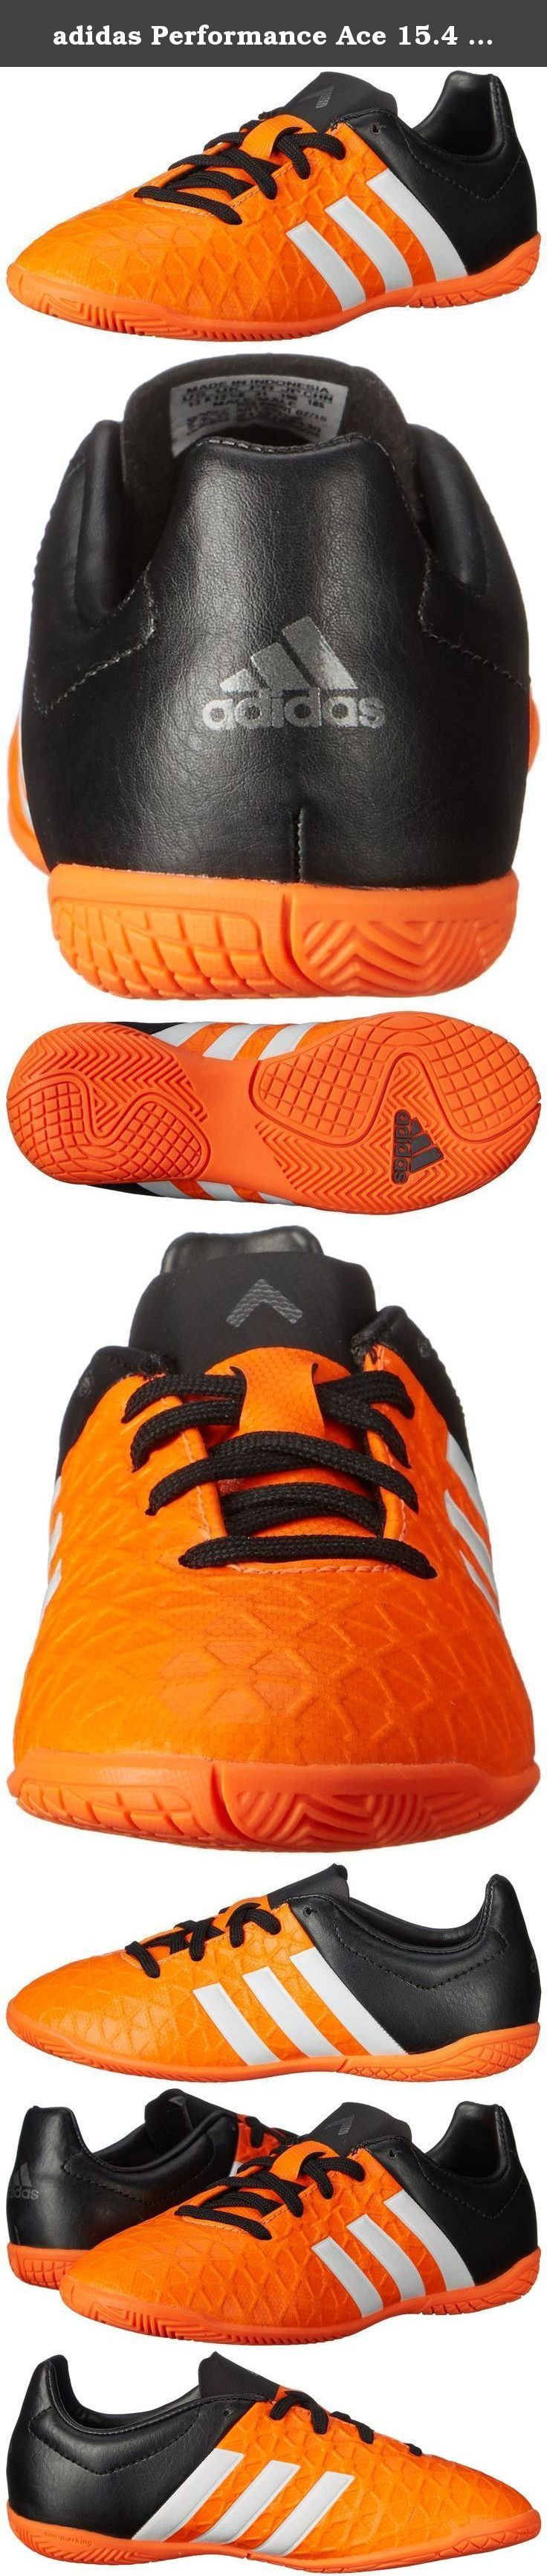 adidas Performance Ace 15.4 Indoor Soccer Shoe (Little Kid/Big Kid). Looking for the perfect kids' indoor soccer shoes to complete their kit our latest design takes comfort and performance to the next level with a wider construction, a super-soft lightweight upper, and powered-up traction to keep the ball (and the game) totally under your junior player's control.